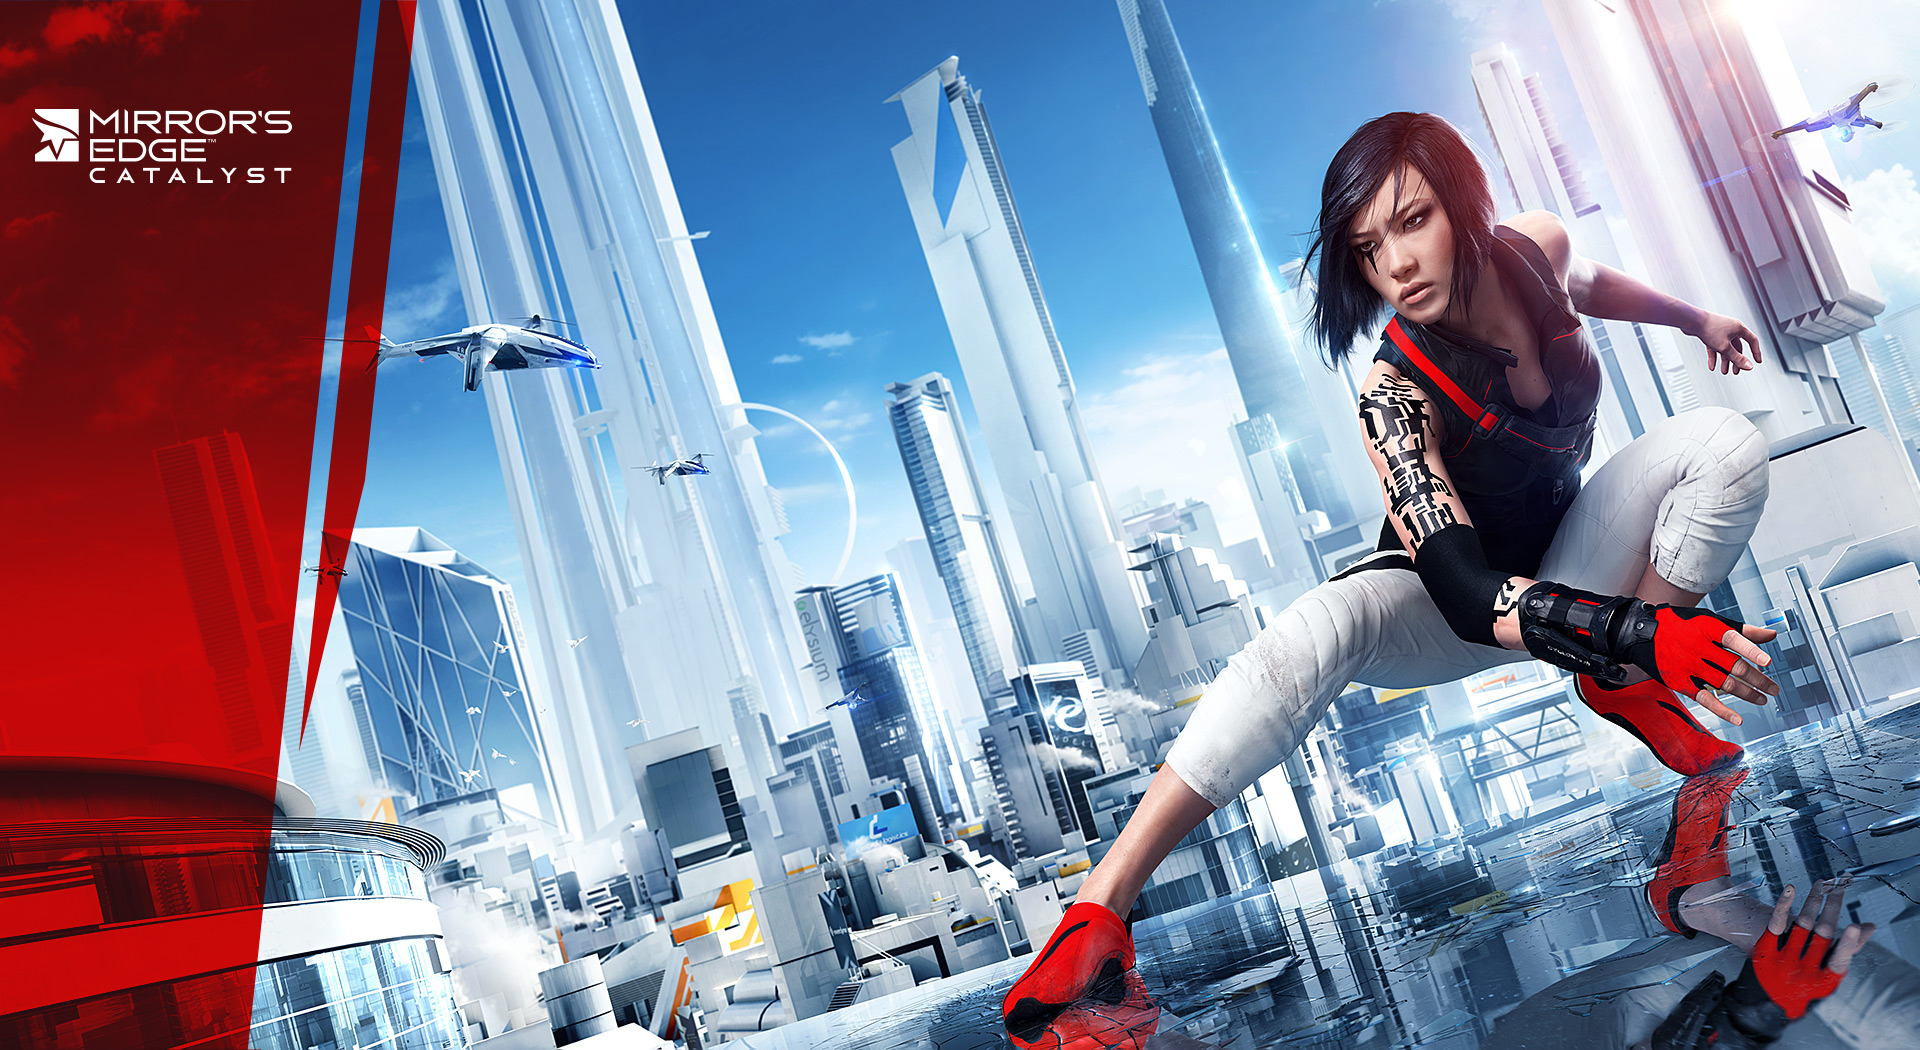 Mirror's Edge to be potentially brought to television